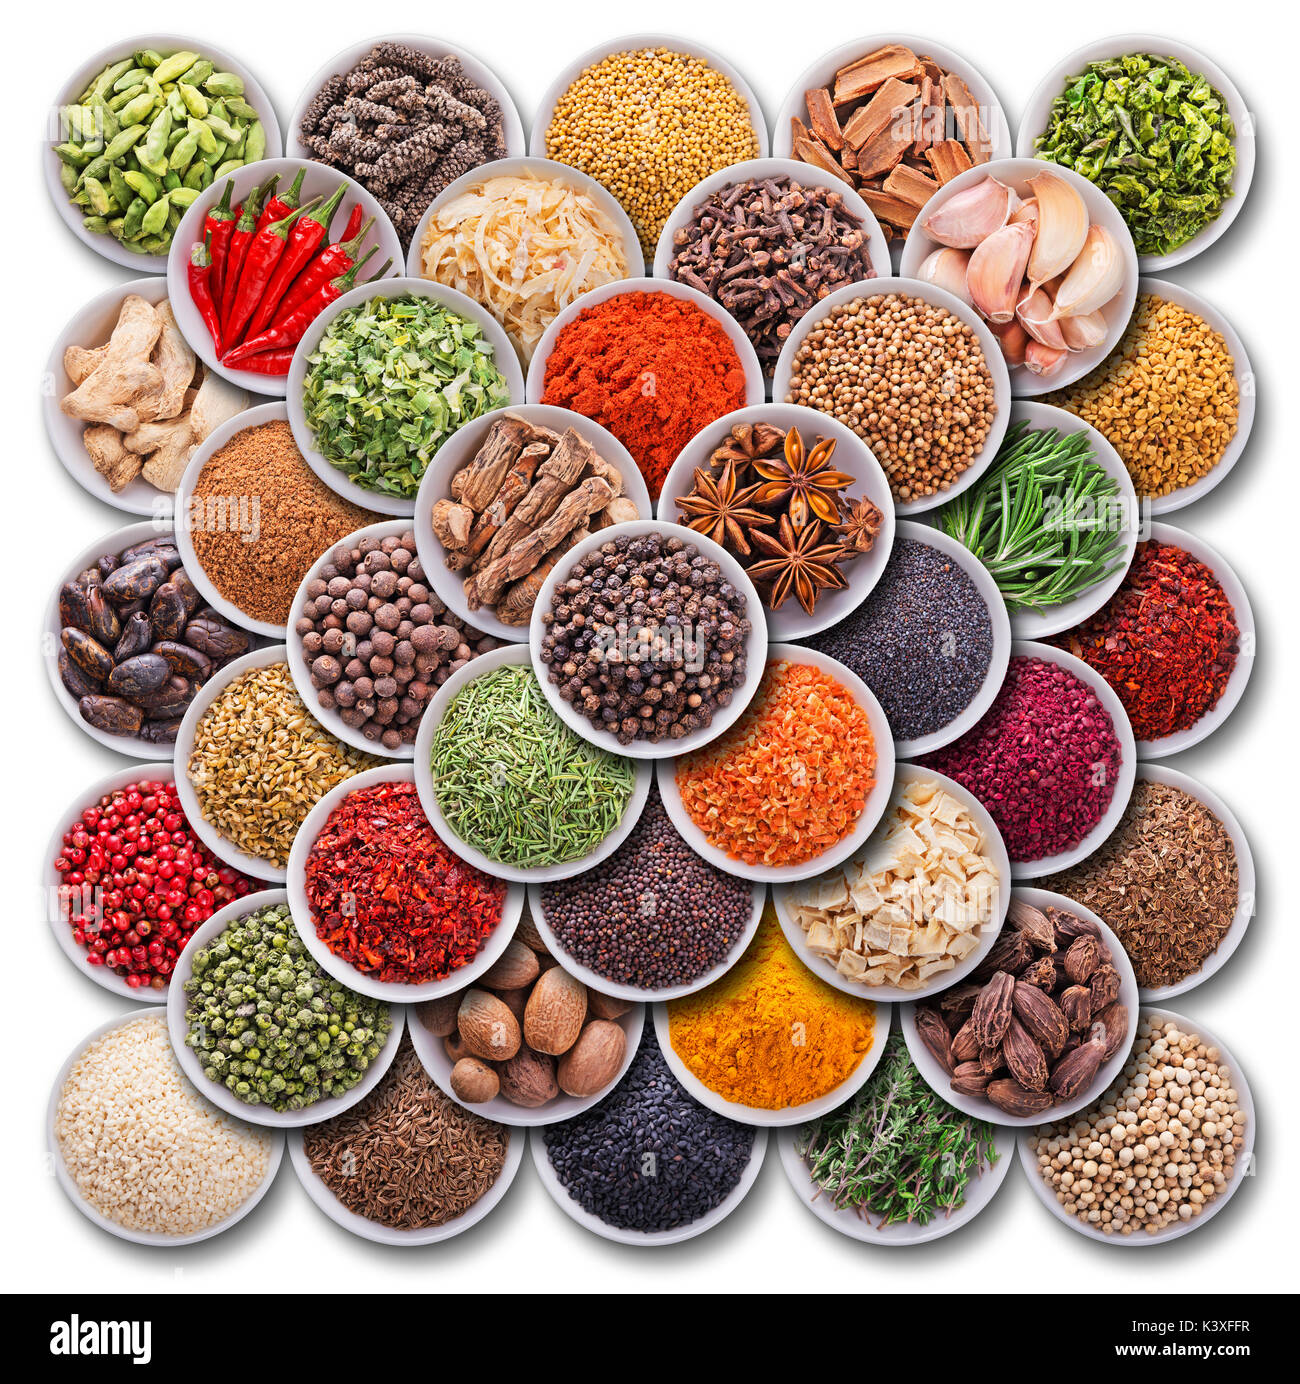 Bright colorful composition with spices and herbs - Stock Image